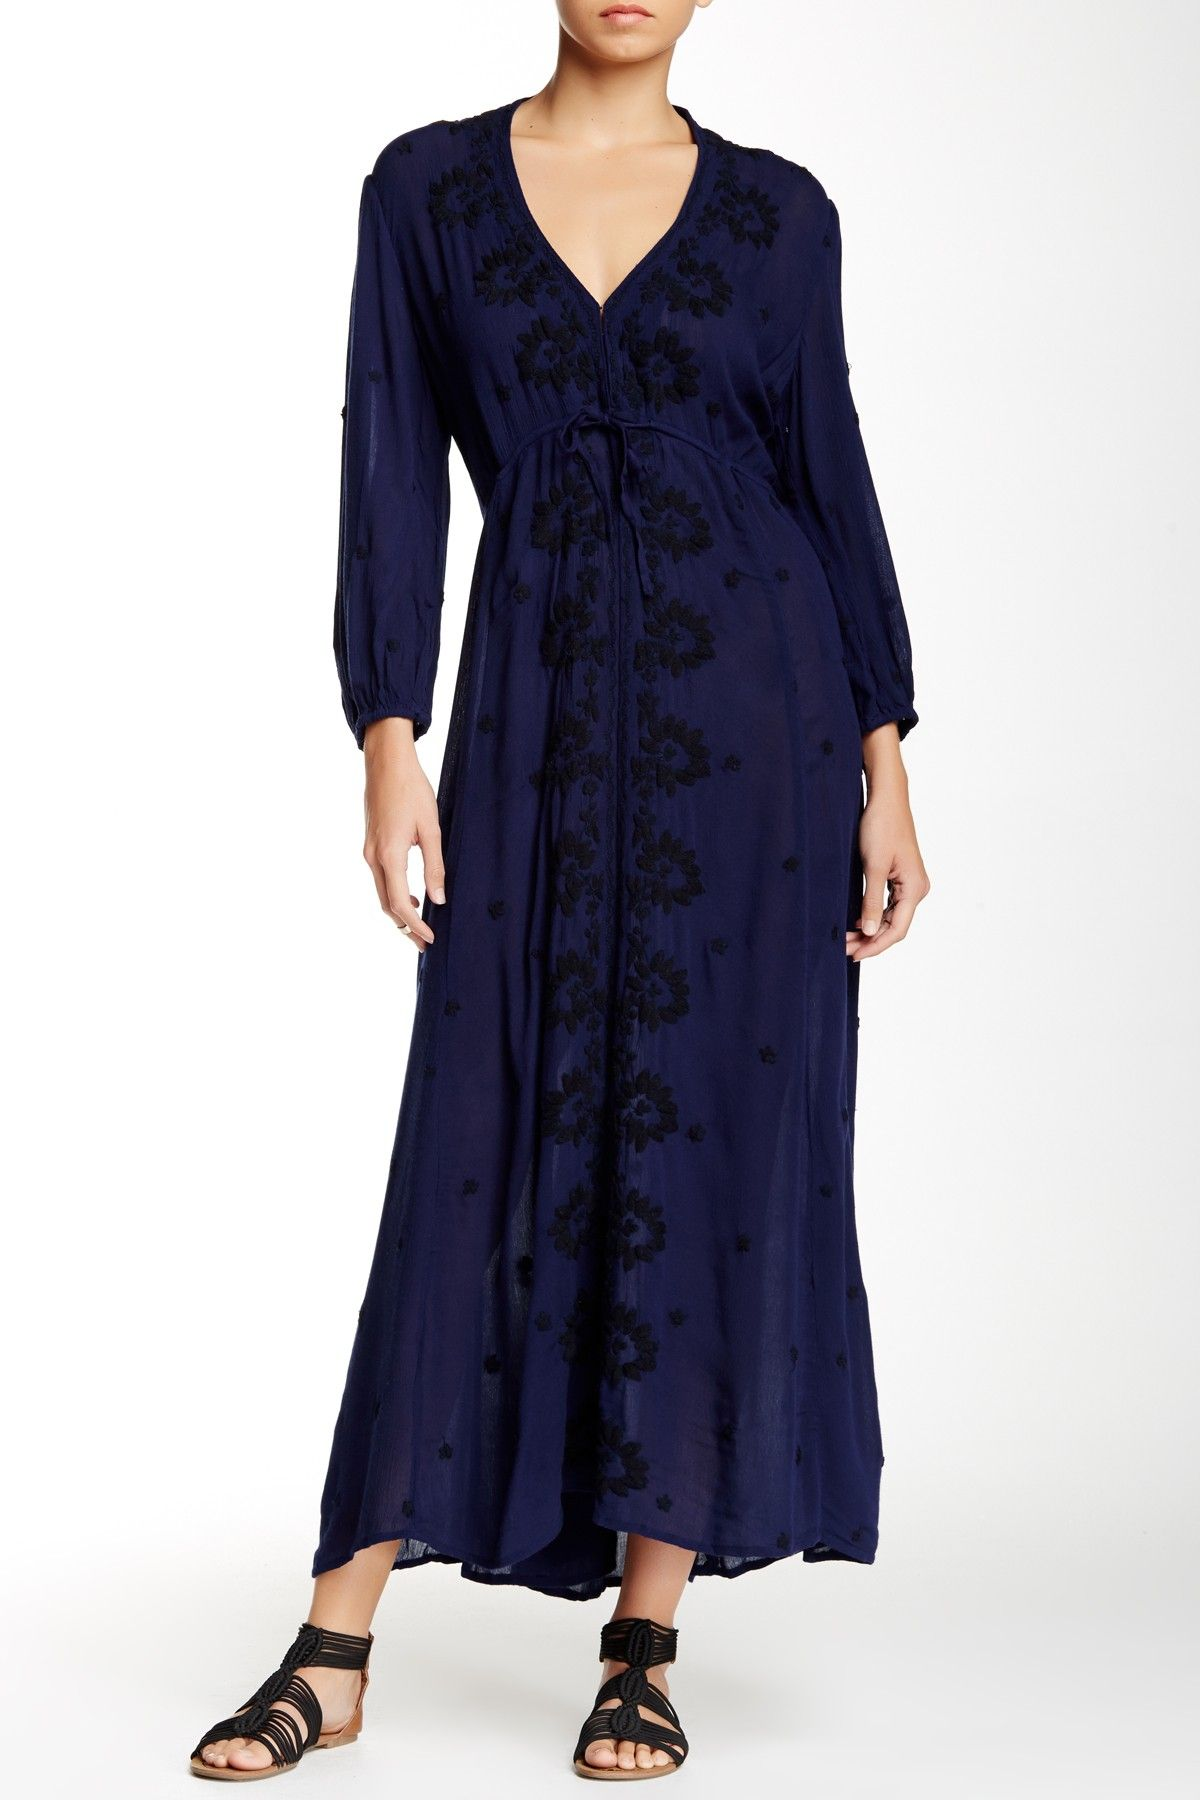 Embroidered Gauze Midi Dress By Free People On Nordstrom Rack Gauze Maxi Dress Maxi Dress Dresses [ 1800 x 1200 Pixel ]